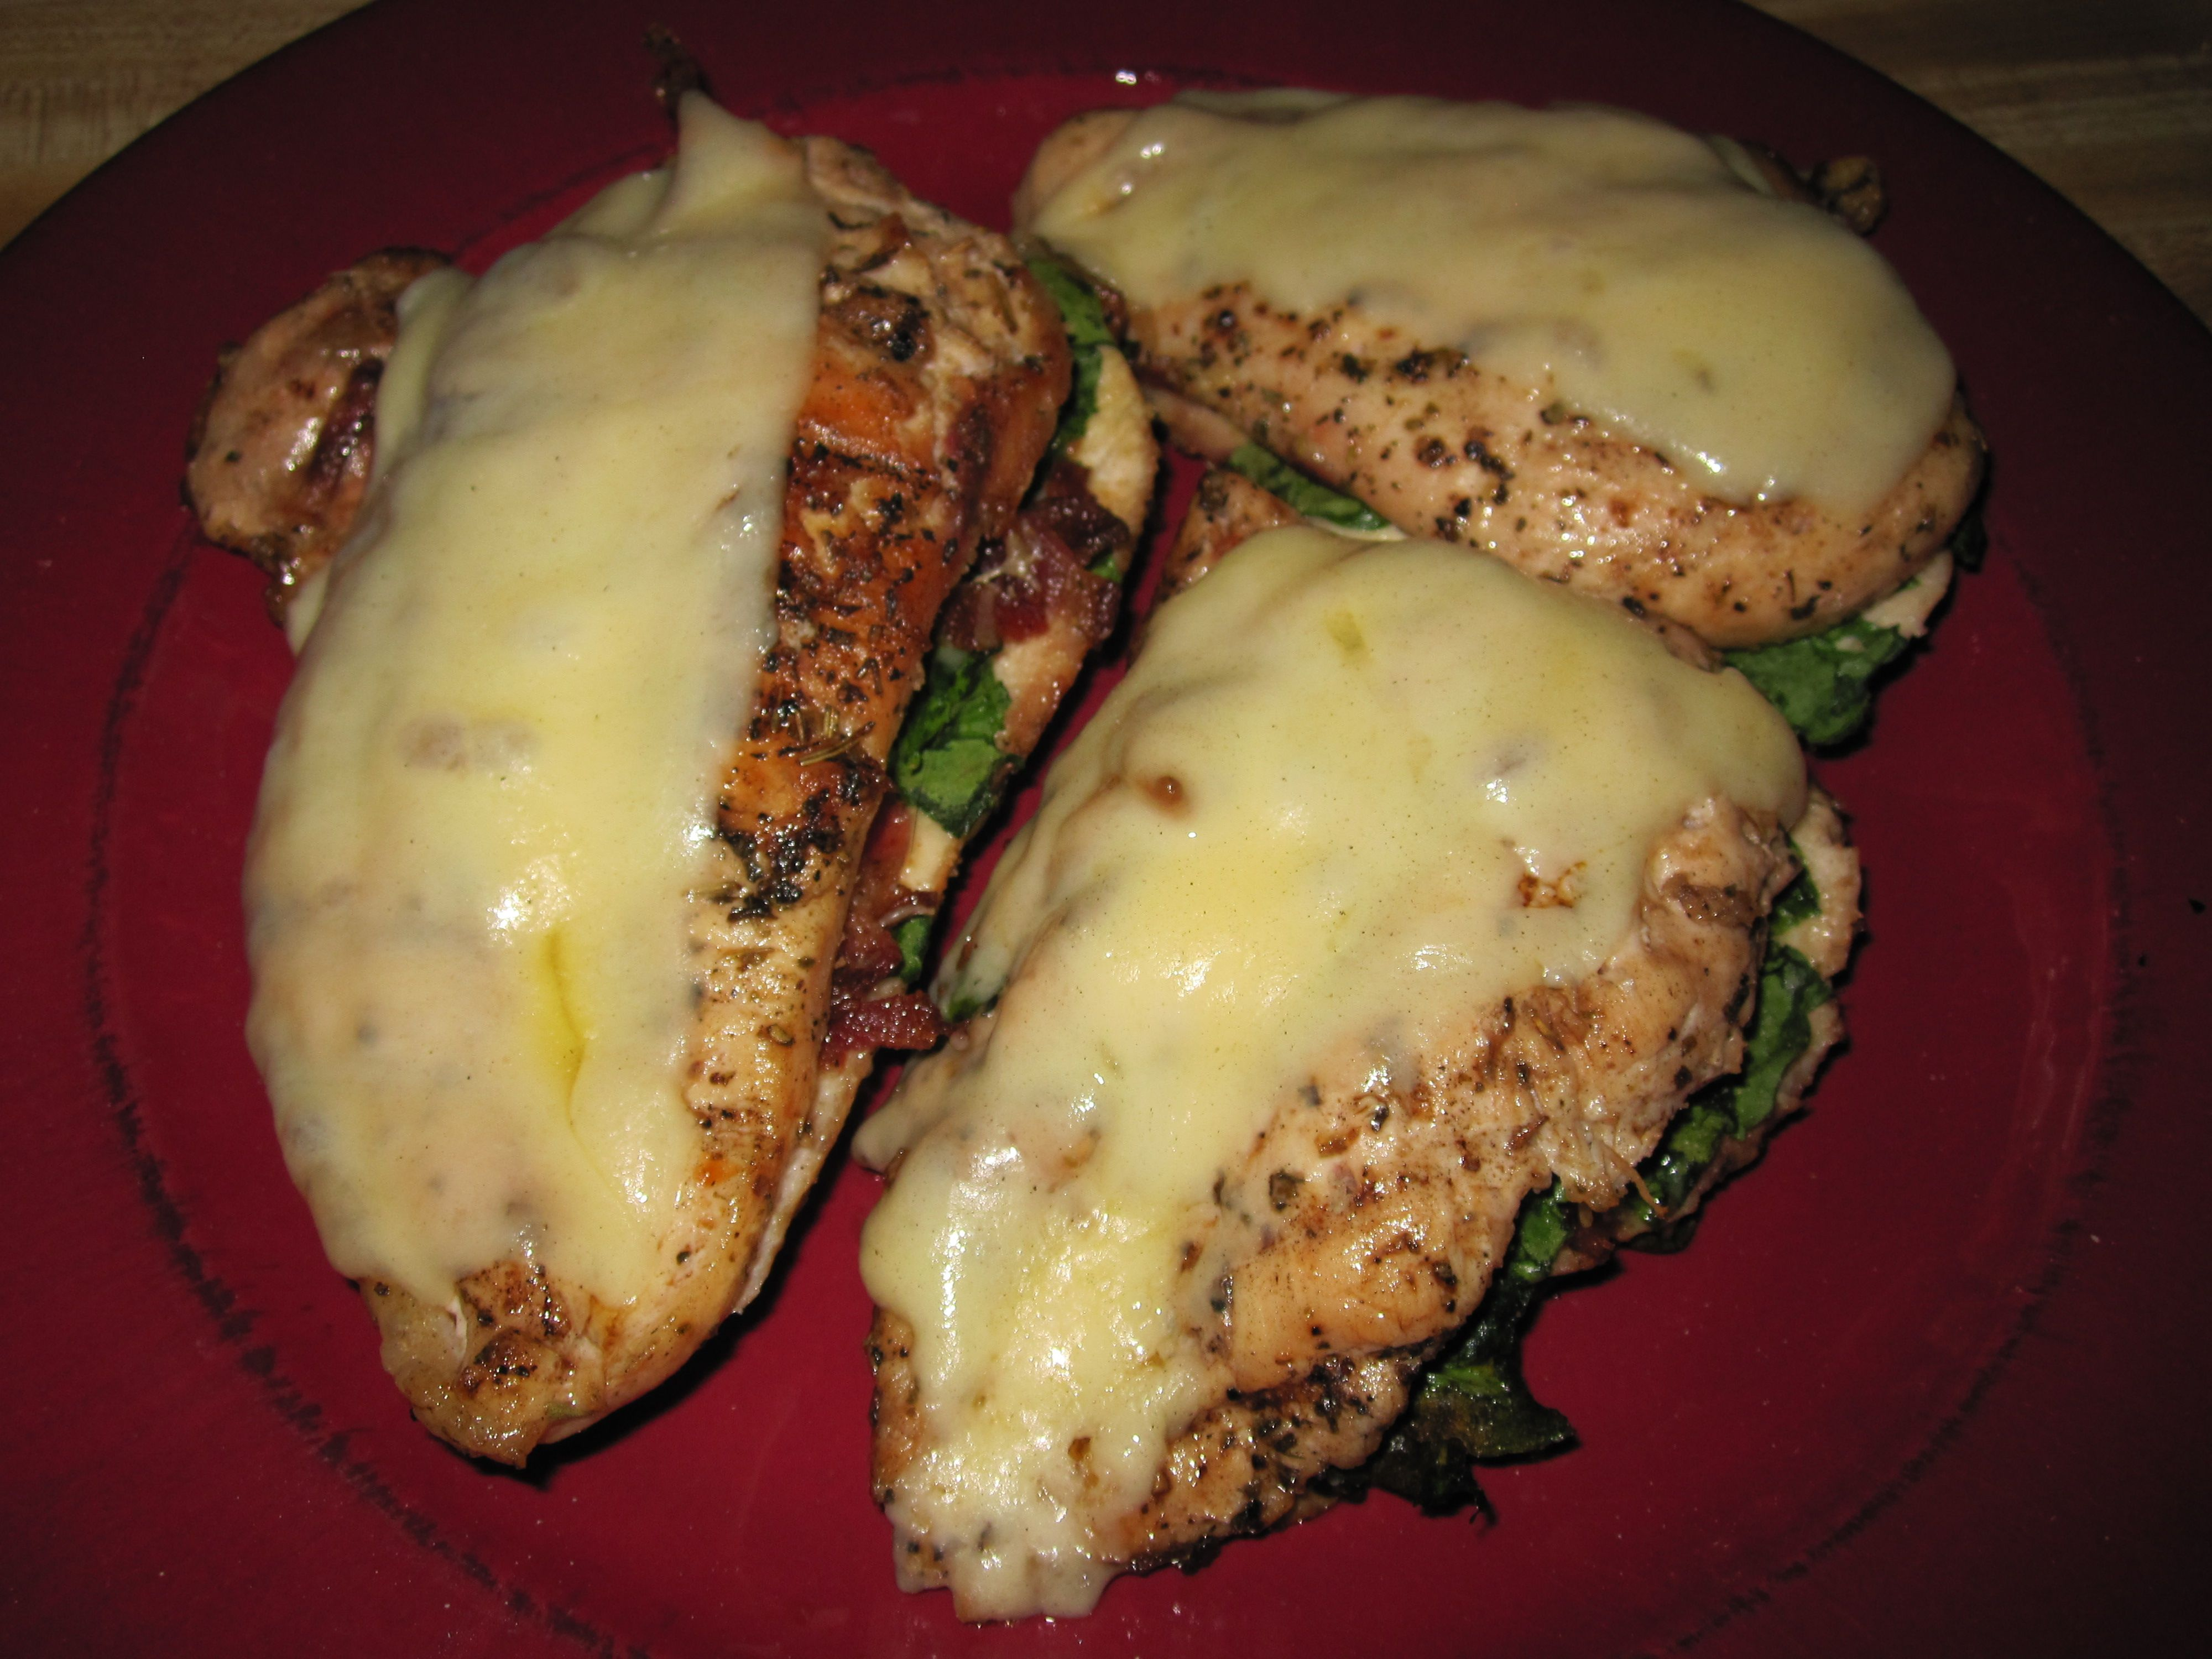 Grilled chicken breasts stuffed with bacon and spinach, topped with cheese.